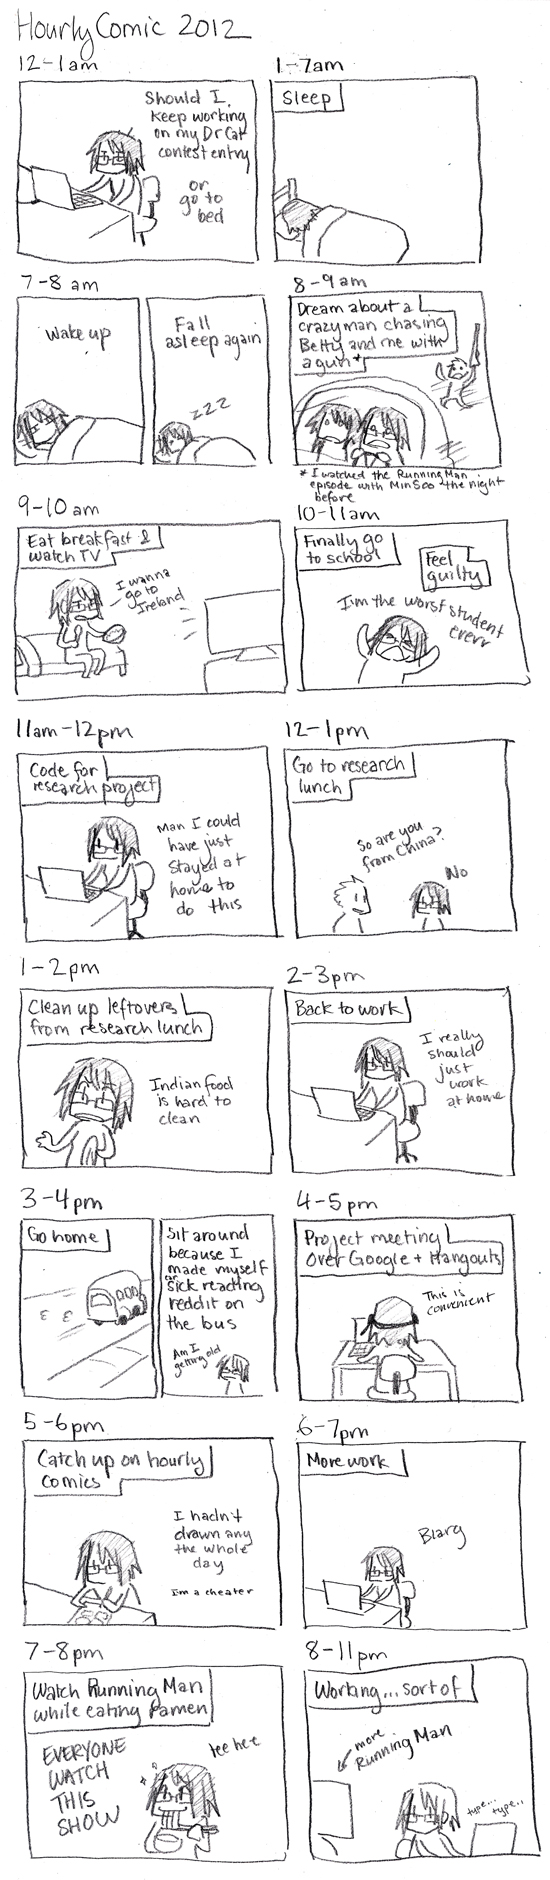 Hourly Comics Day 2012